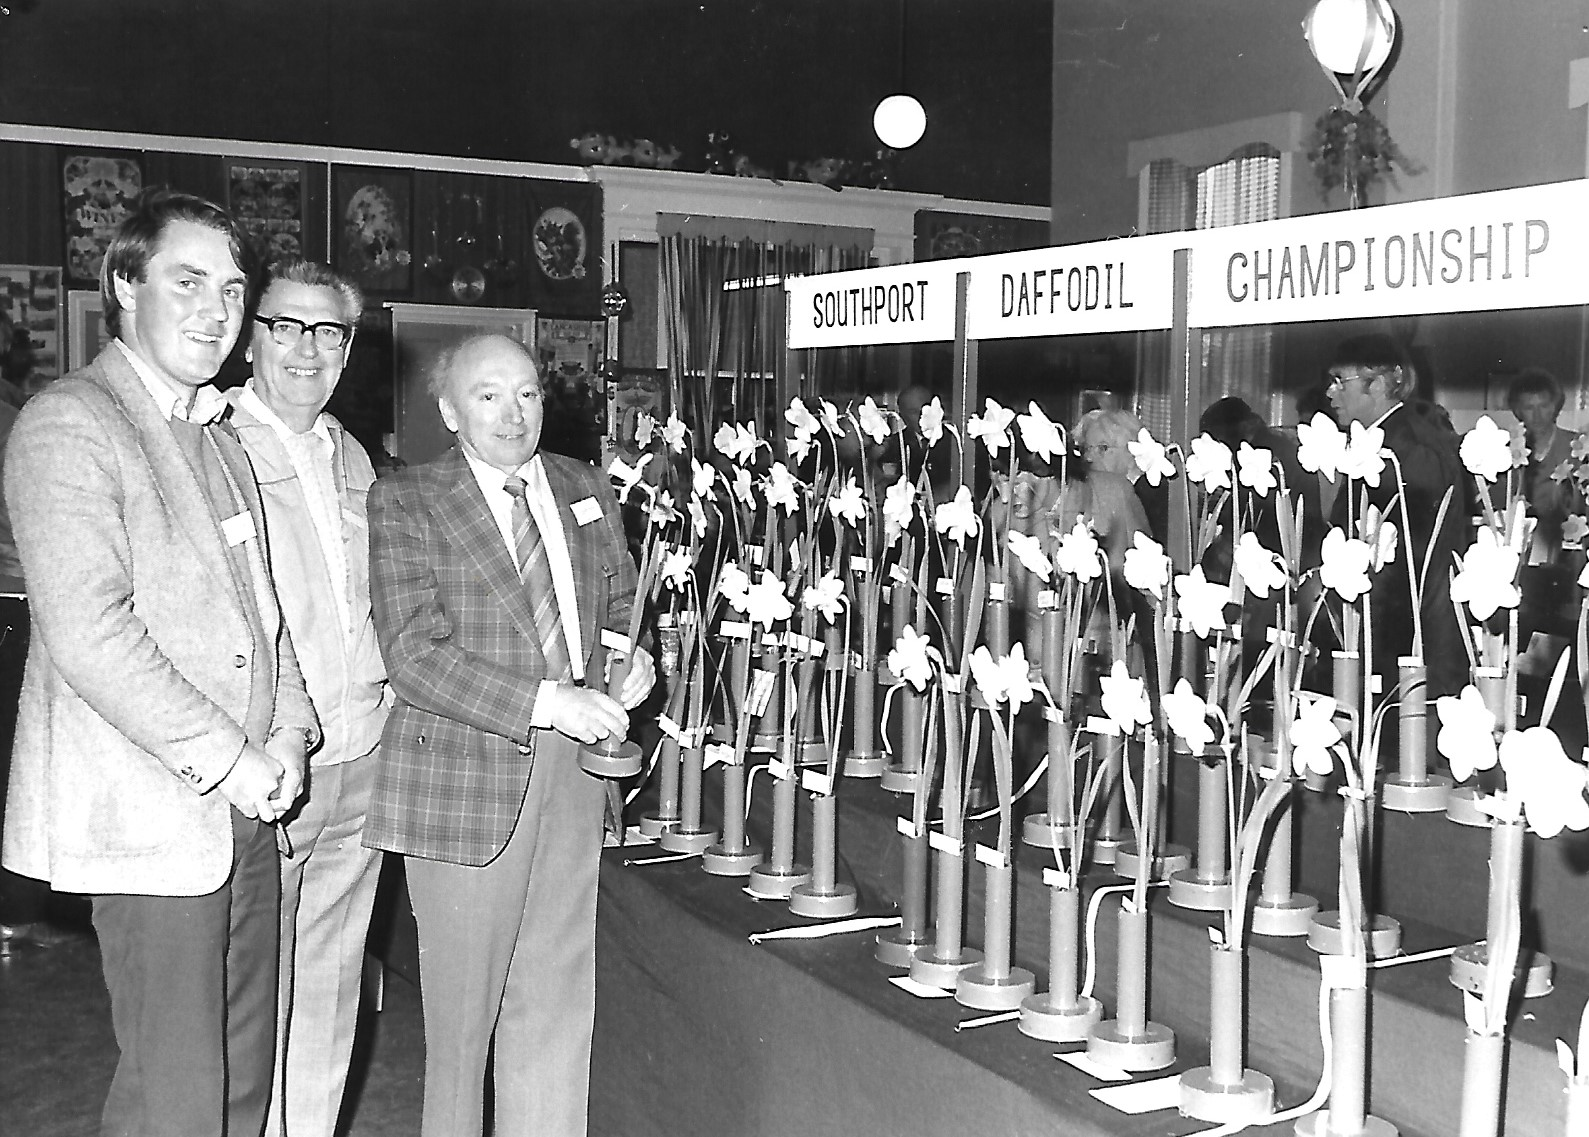 The Southport Daffodil Championship at the Southport Chrysanthemum Society show in Southport in 1983